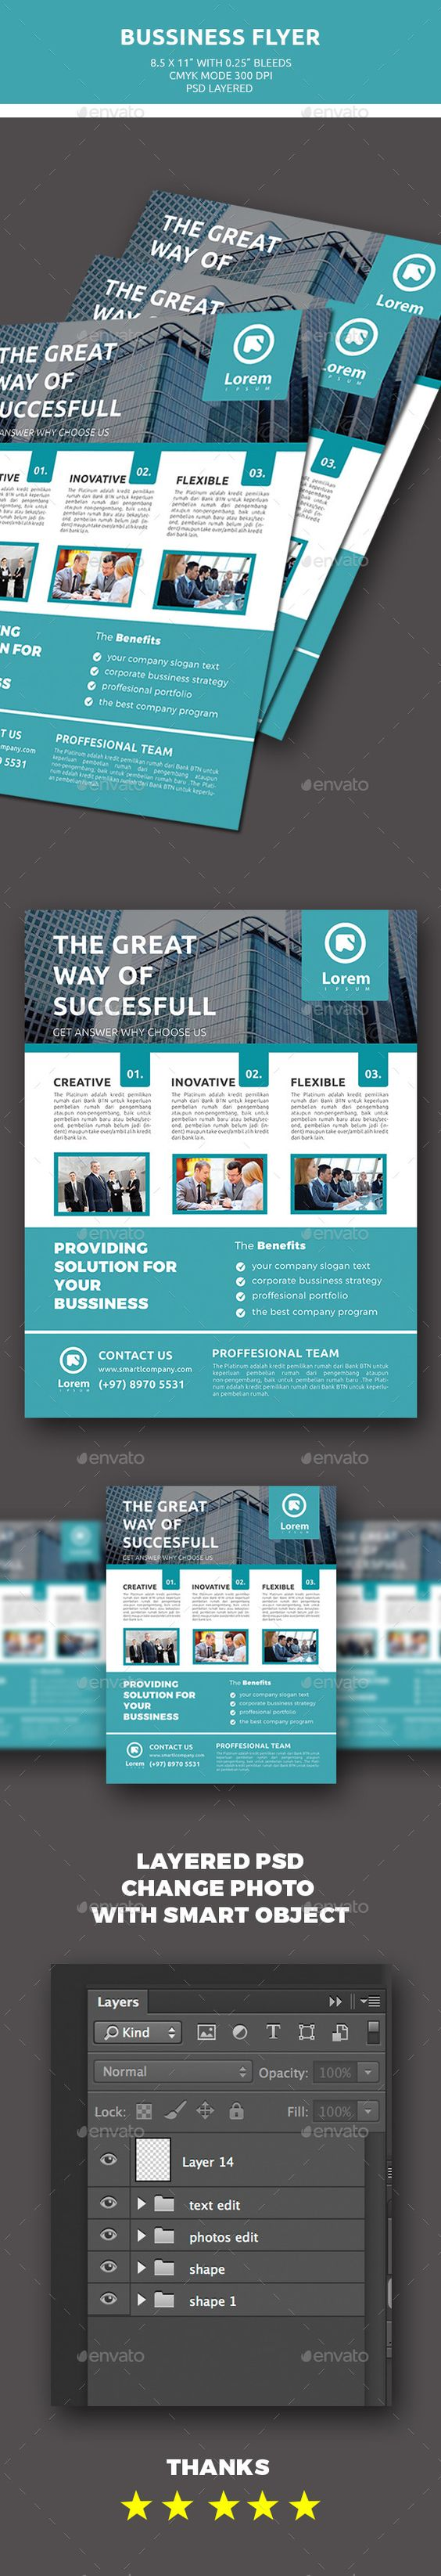 Bussiness Flyer Design #flyer #corporate #law #firm #legal #lawfirm #company #brochures